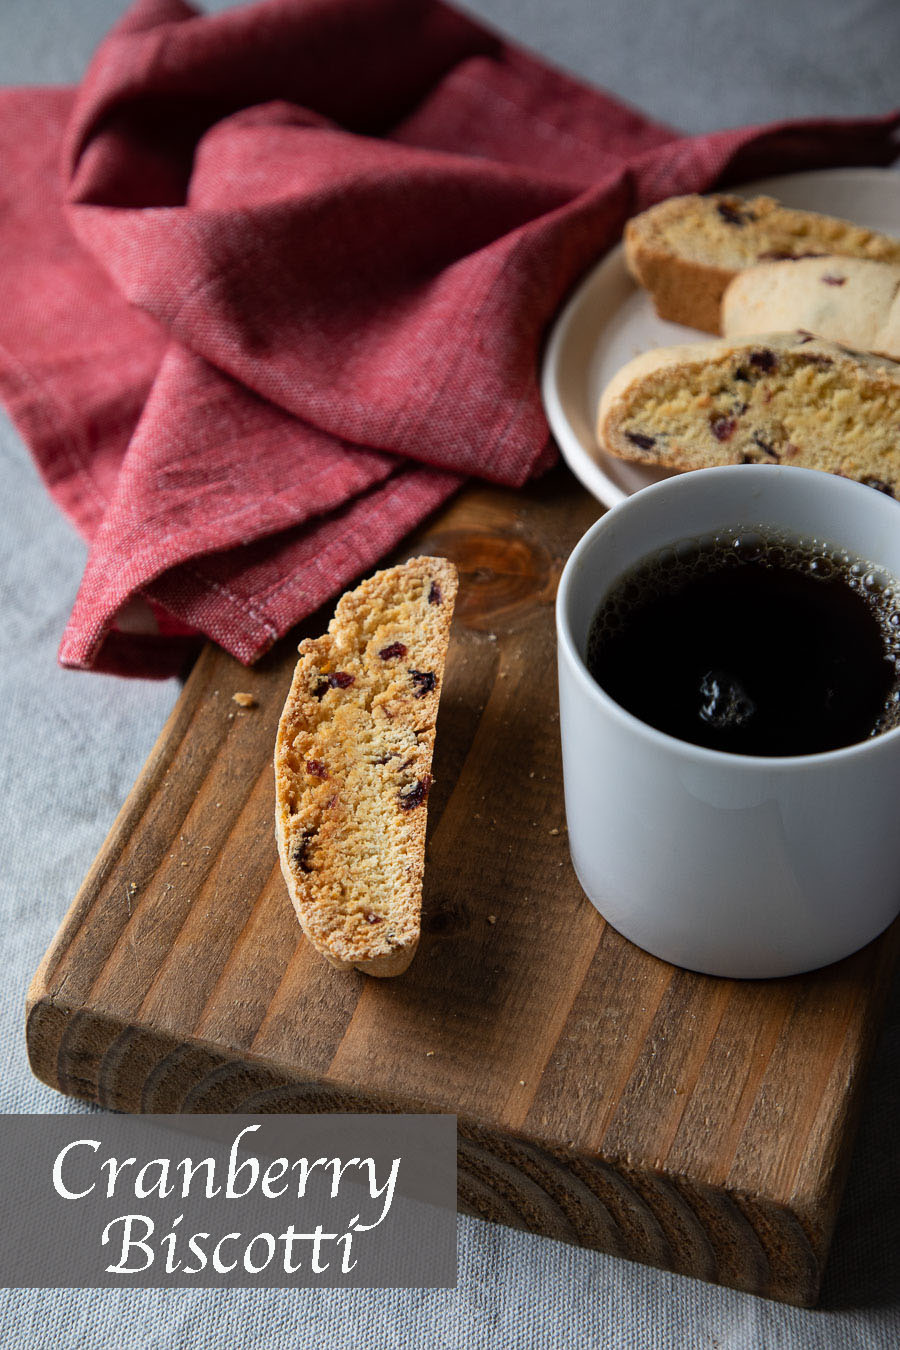 Cranberry Biscotti Recipe. A healthy biscotti recipe perfect for coffee or tea. This recipe is inspired by Italian cookies and are perfect for a snack. #lmrecipes #cookies #biscotti #baking